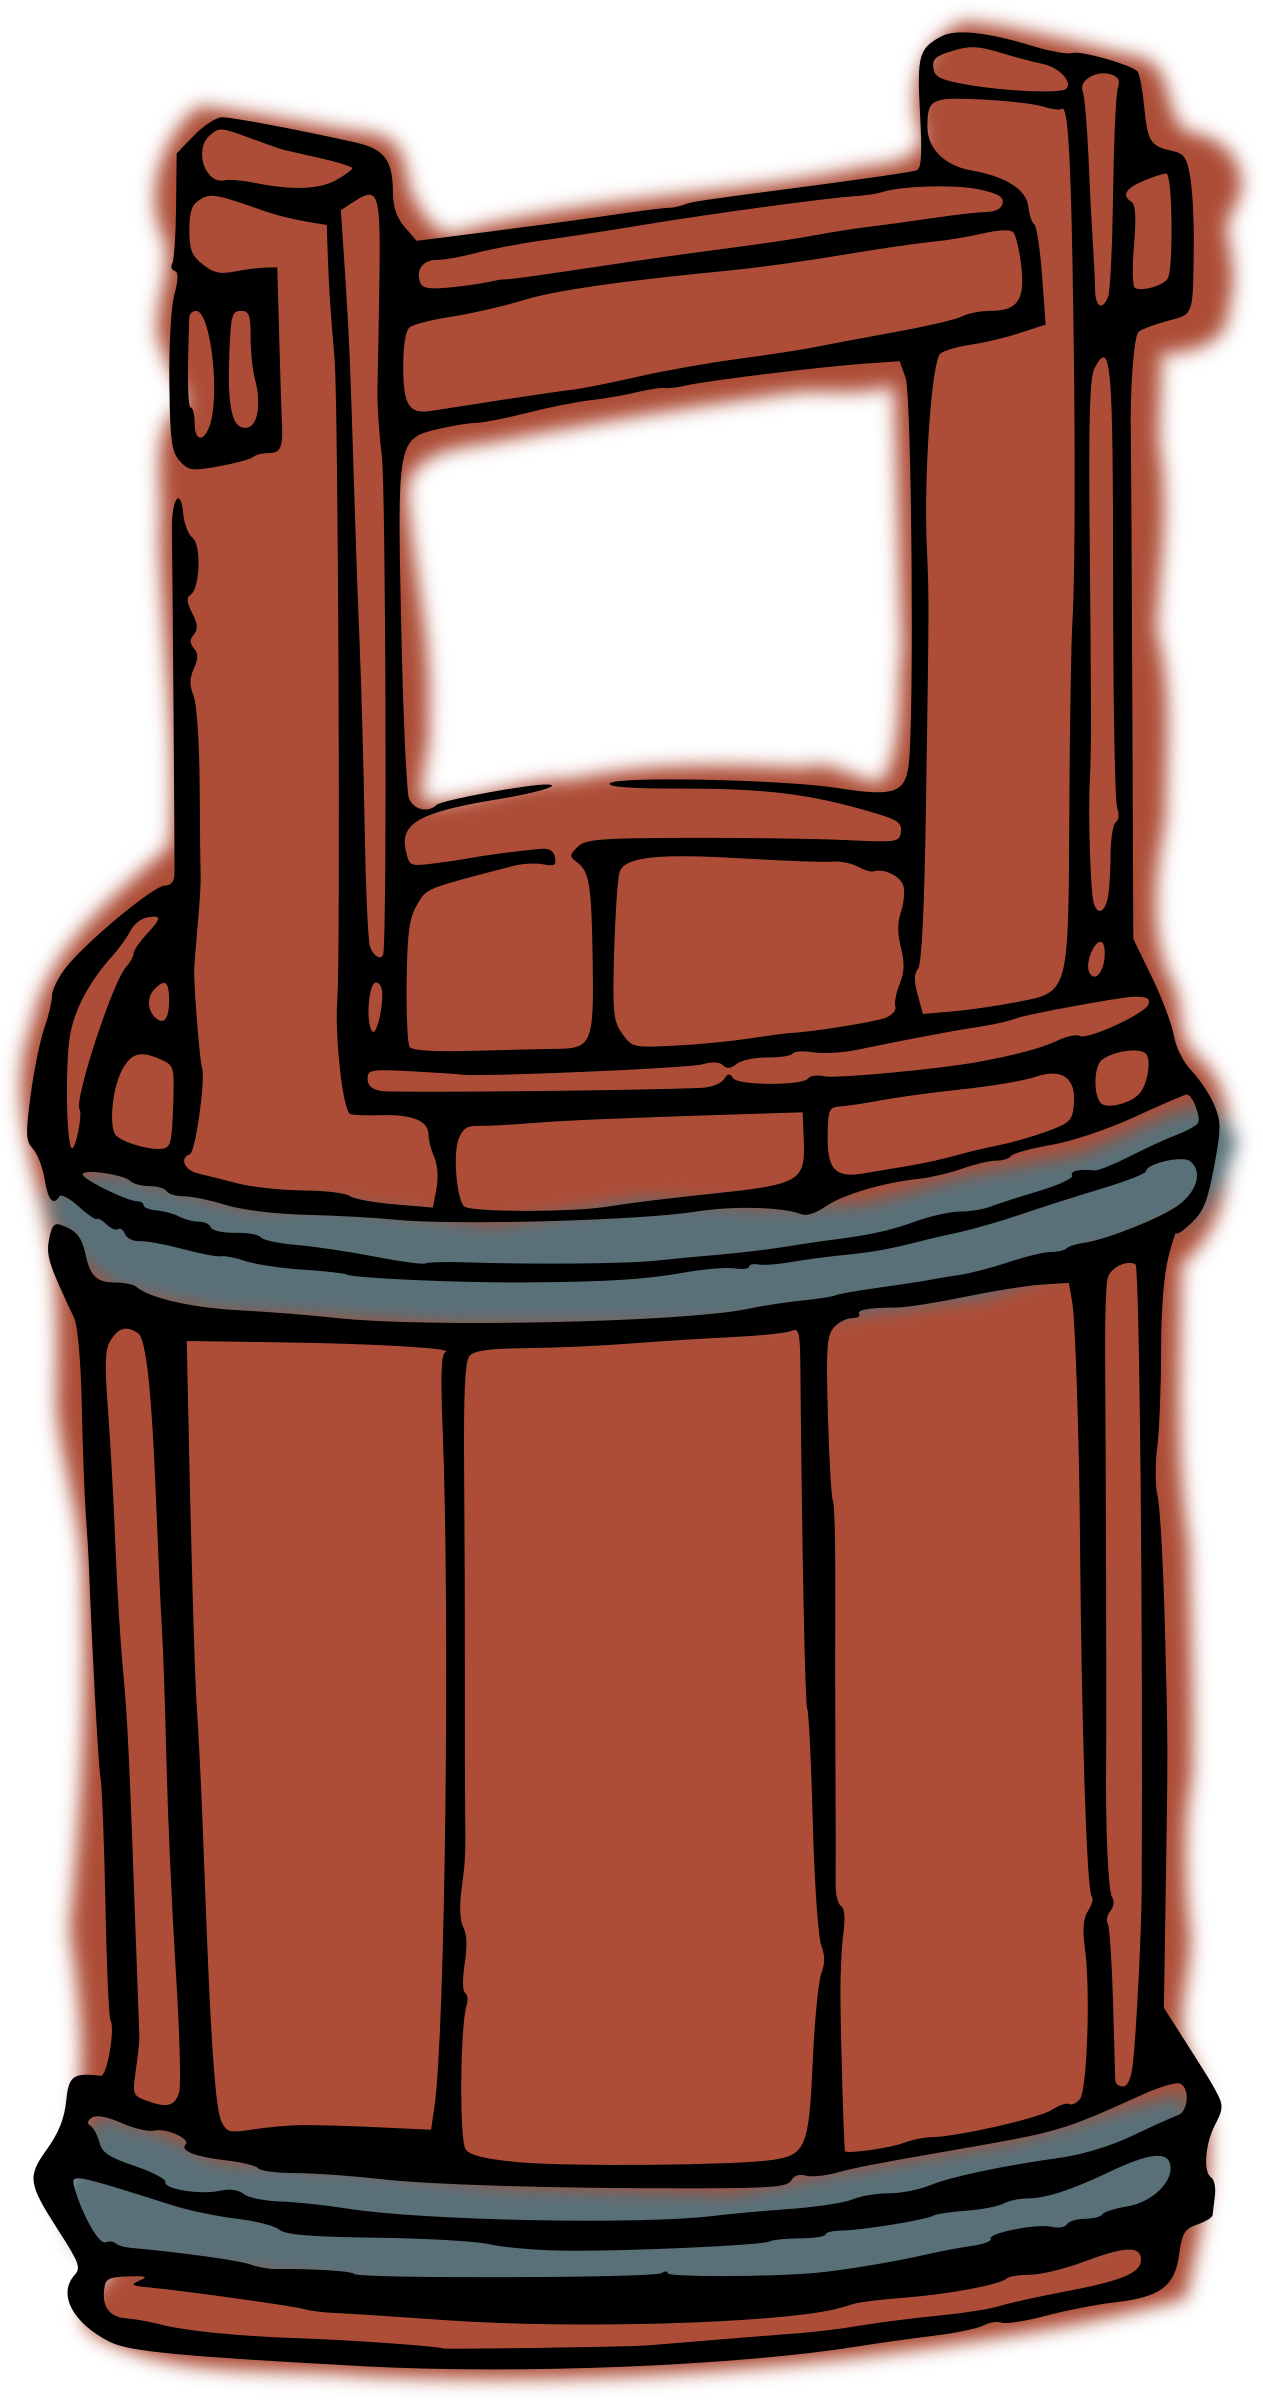 Wooden bucket by hansendo